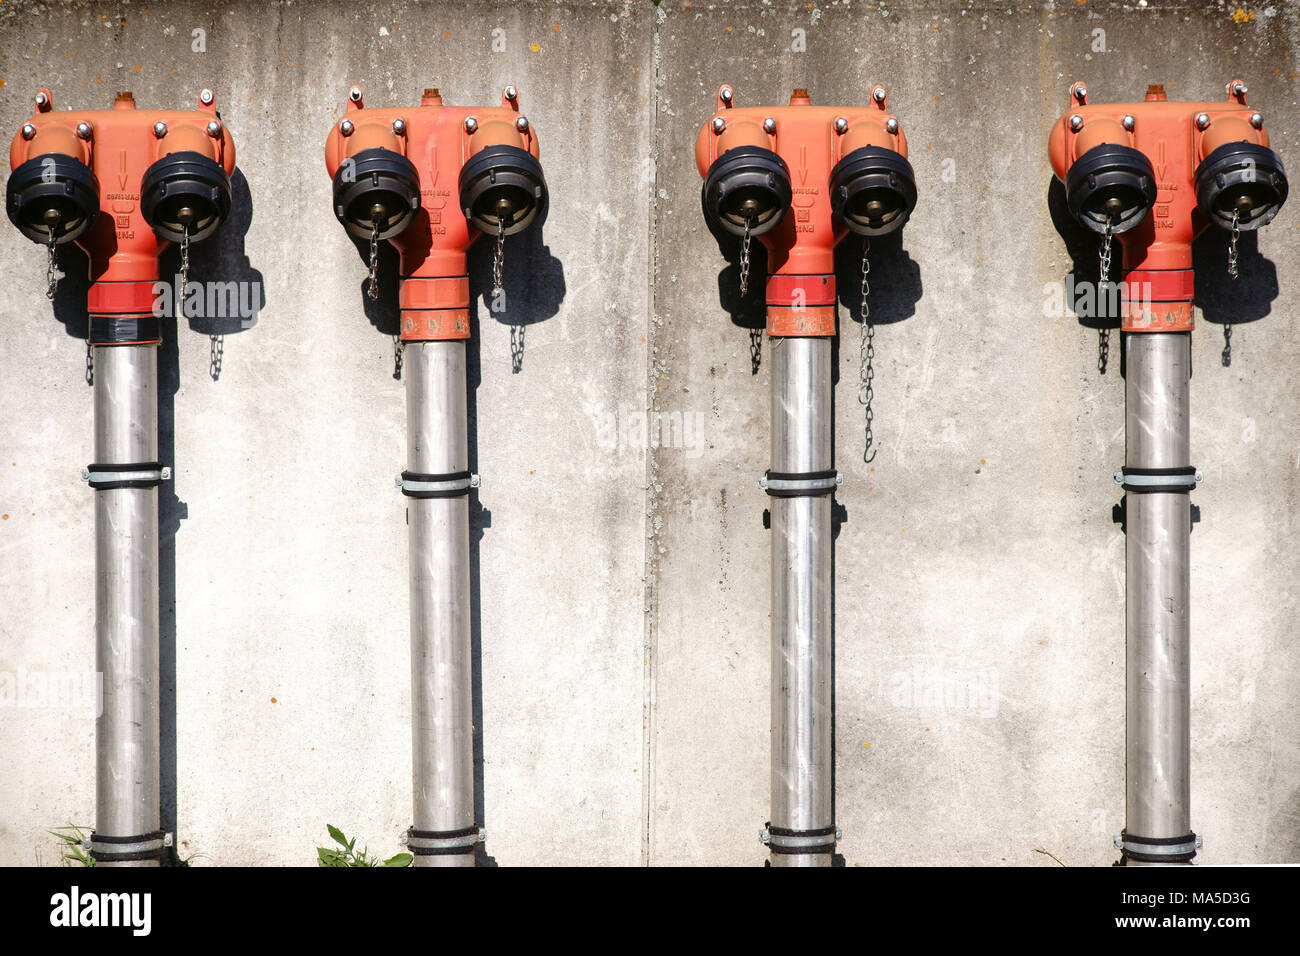 sorted side by side extinguishing water point ona public building, - Stock Image